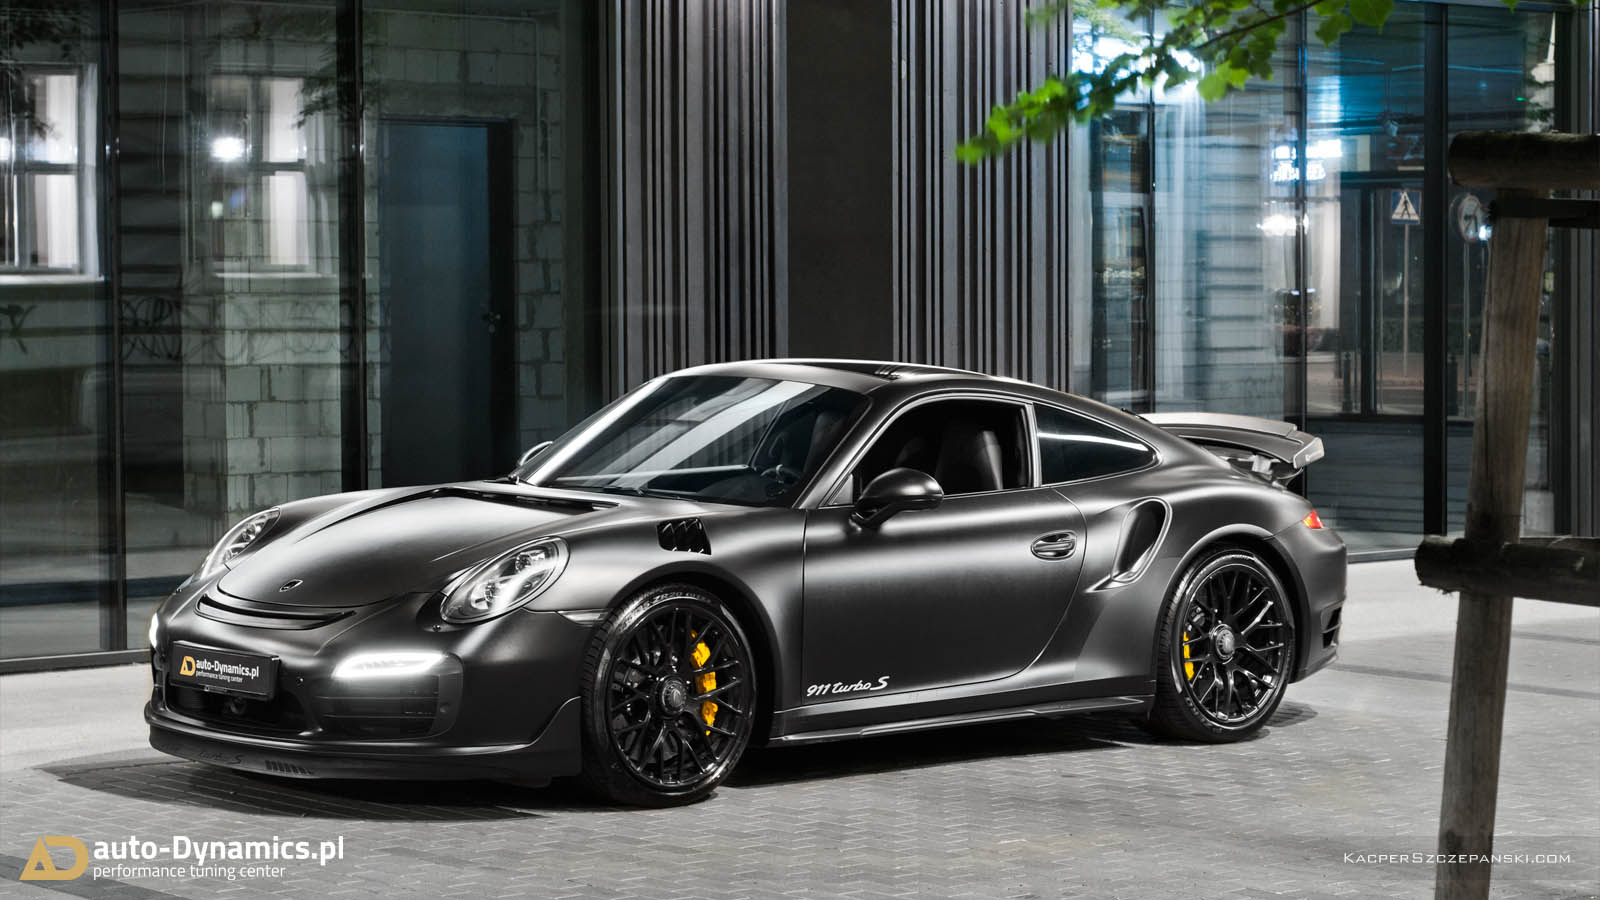 Dark Knight 911 Turbo S Brings Out The Best